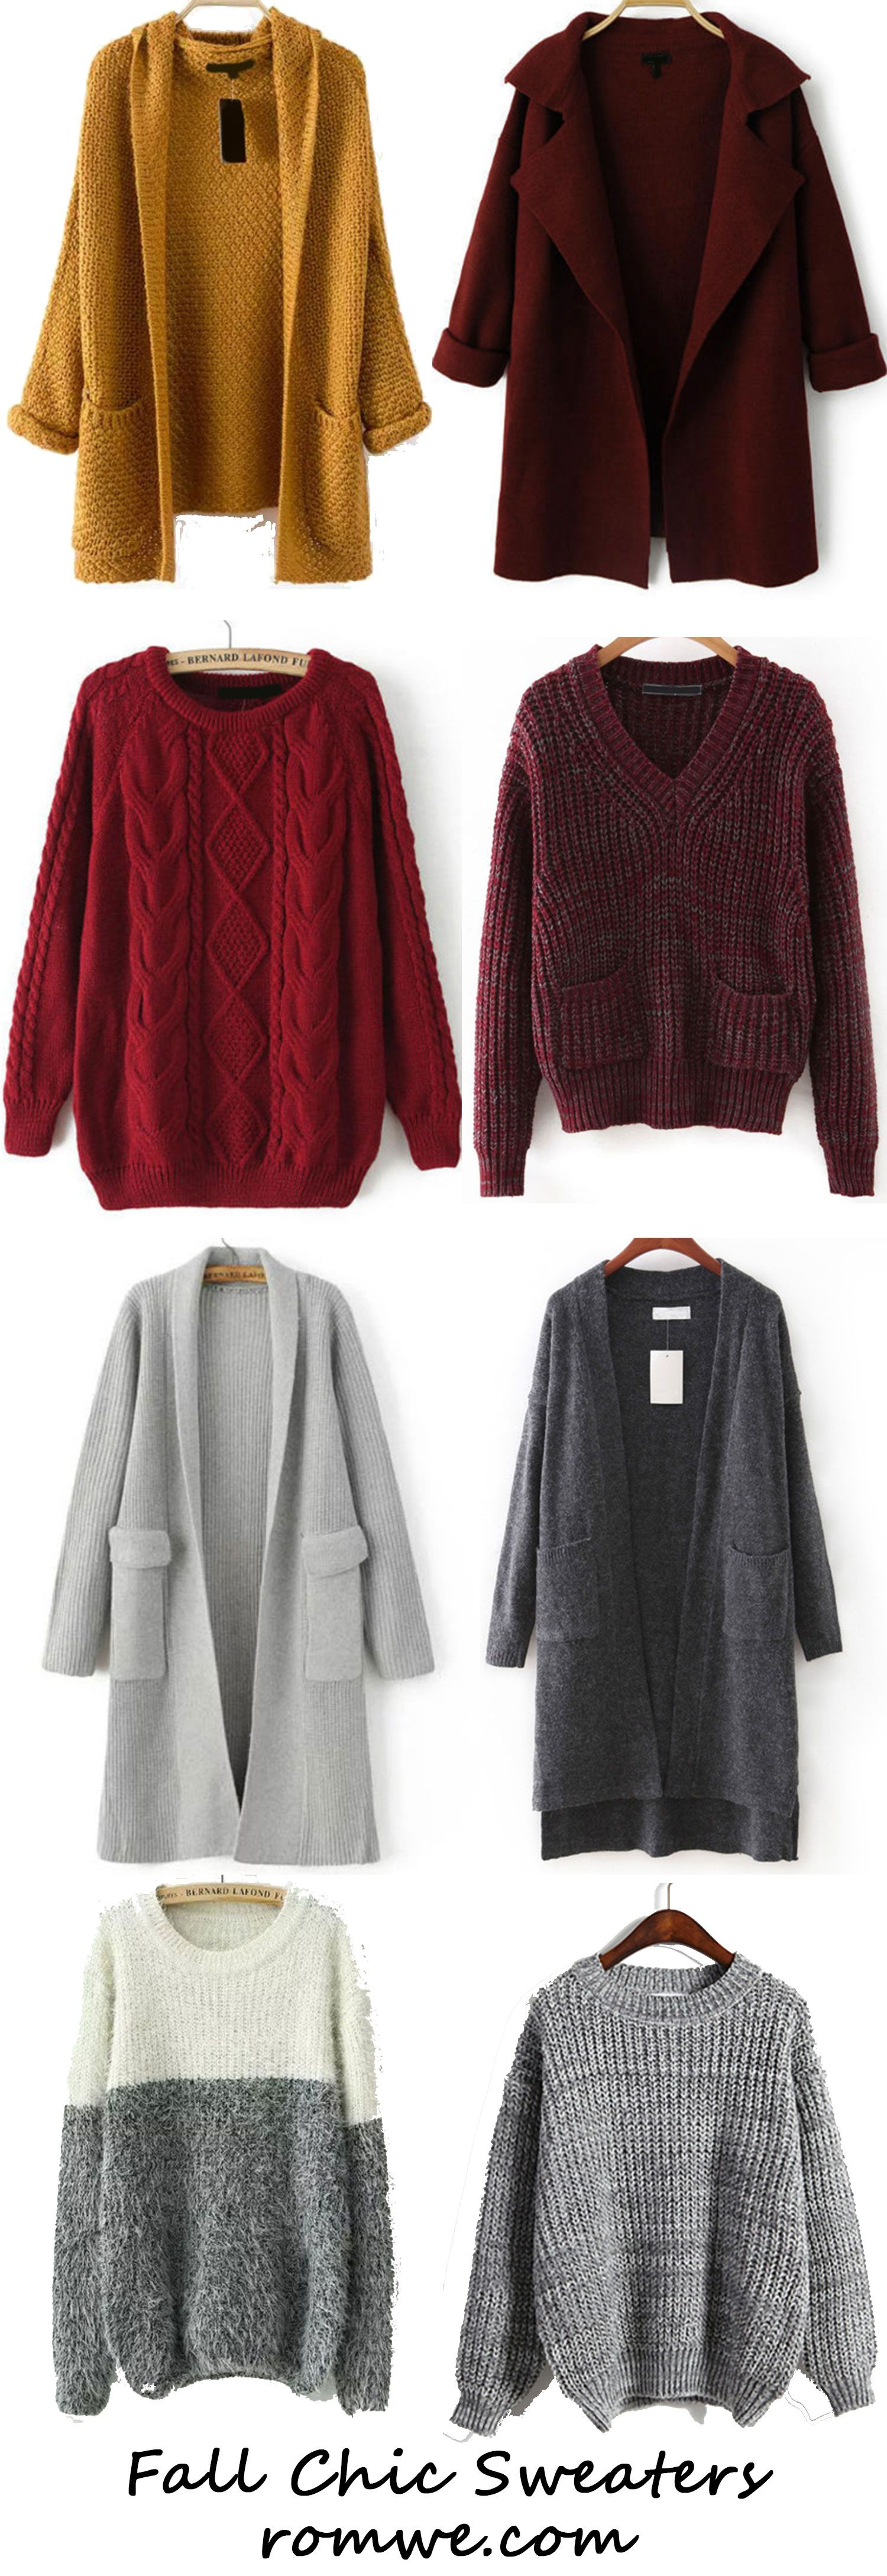 Fall Fashion - Cozy and Pretty Sweaters from romwe.com | |My ...